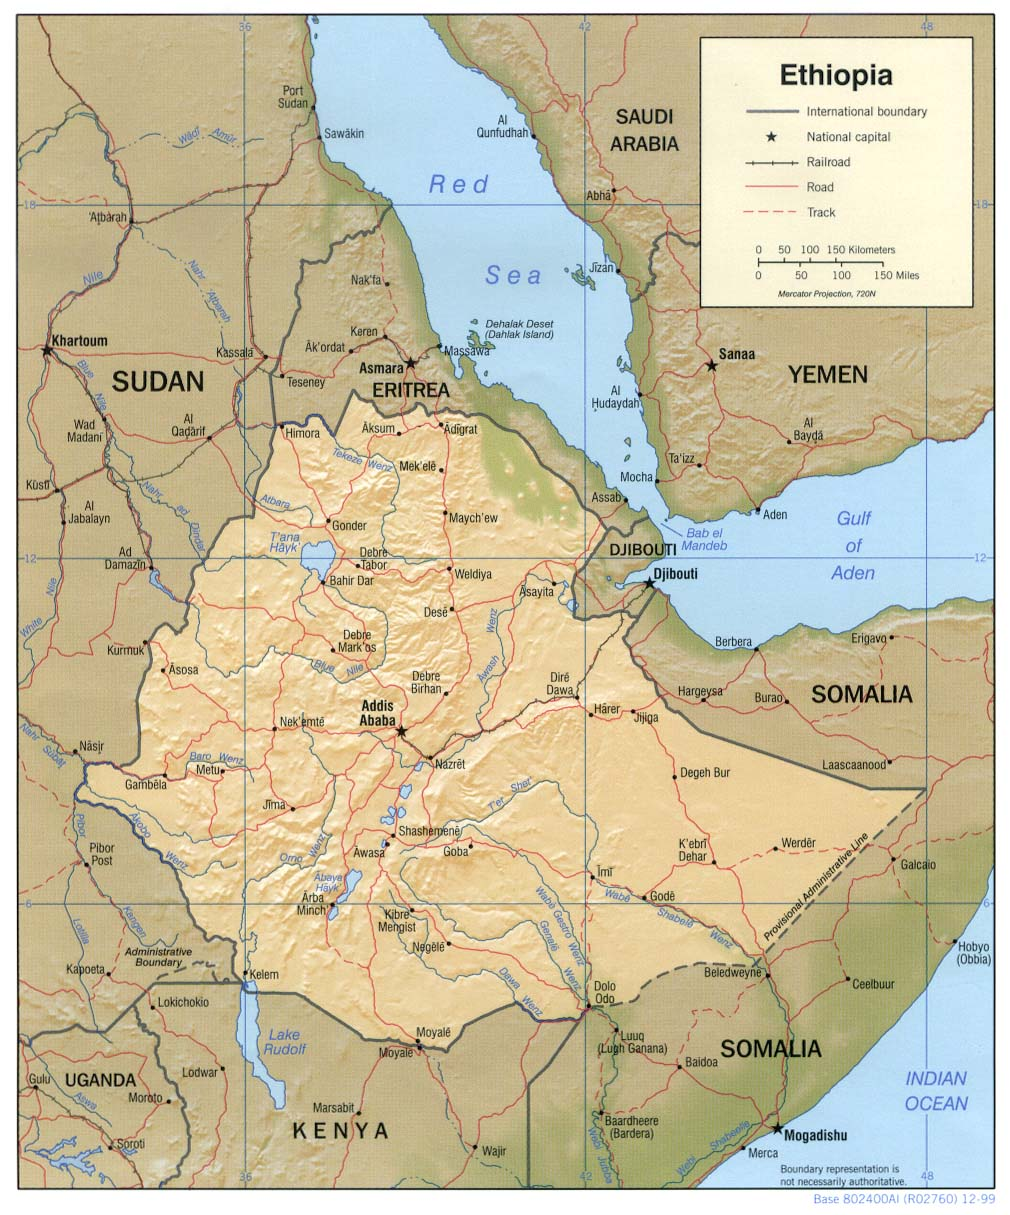 Atlas of ethiopia wikimedia commons ethiopia shaded relief map 1999 ciag gumiabroncs Gallery